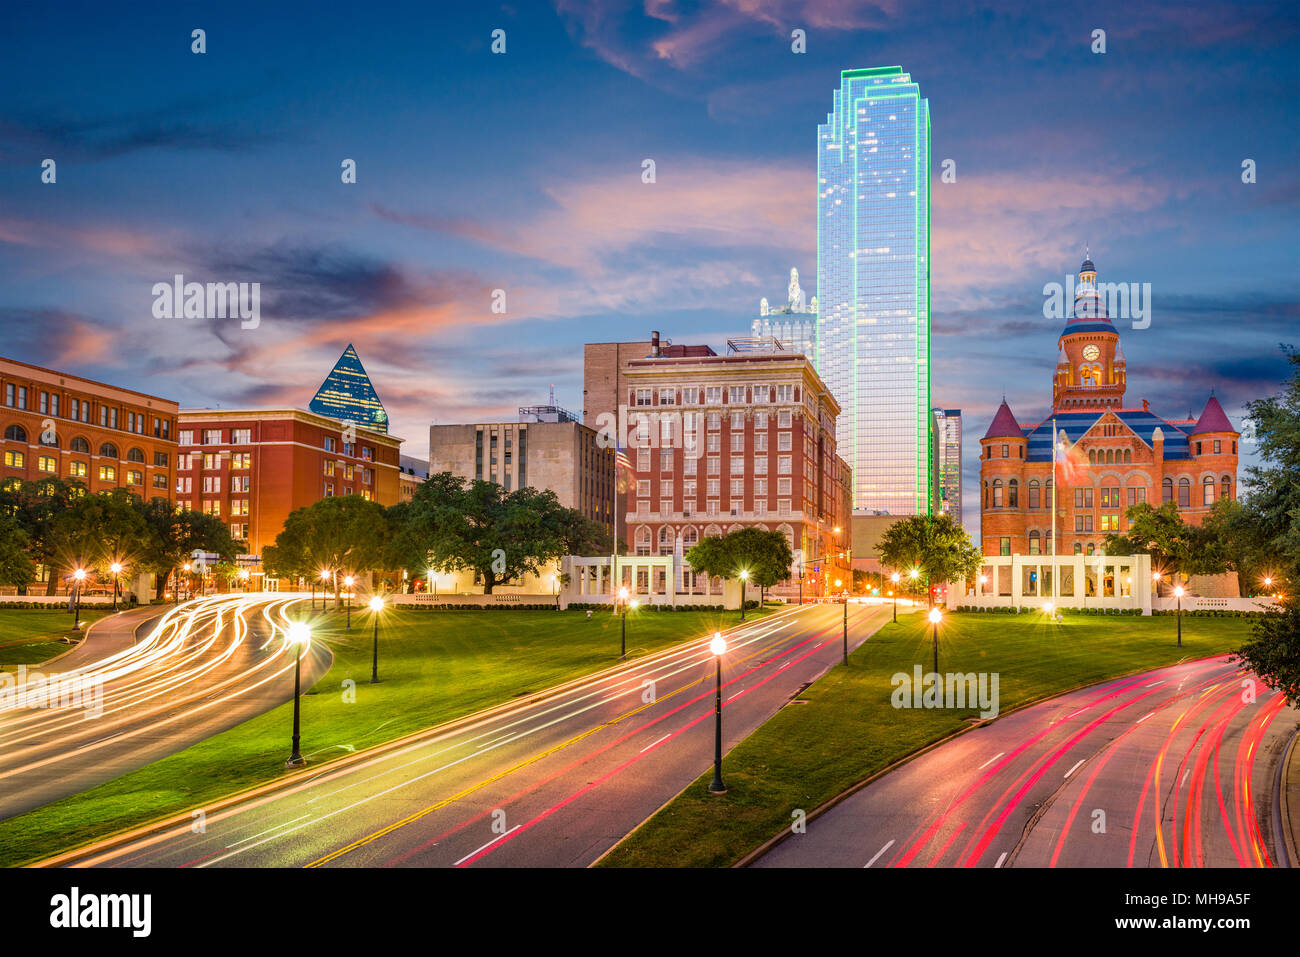 Dallas, Texas, USA skyline over Dealey Plaza. - Stock Image